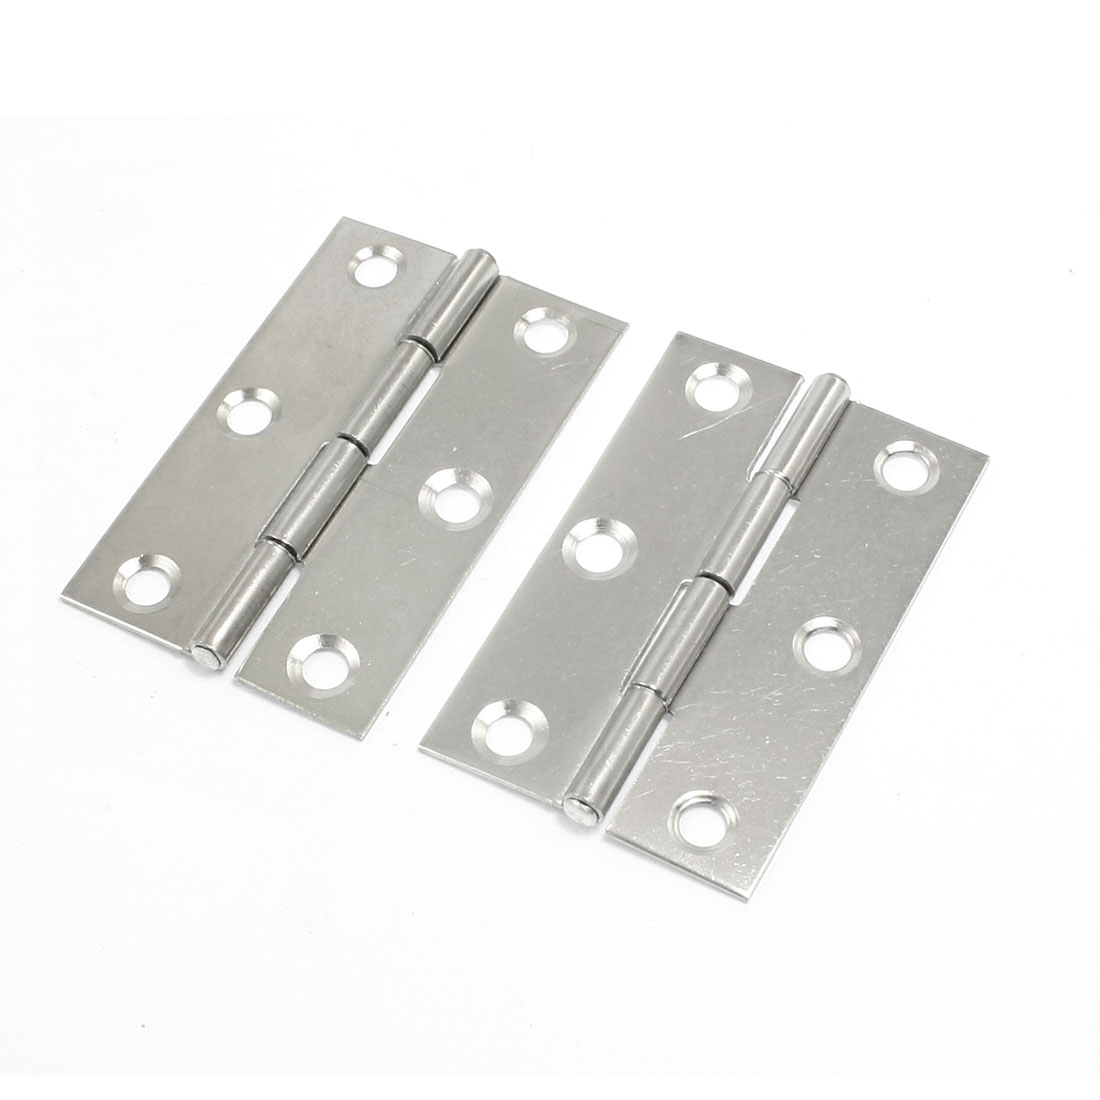 "2.1"" 6 Mounting Holes Door Butt Hinges Silver Tone 2 Pcs"